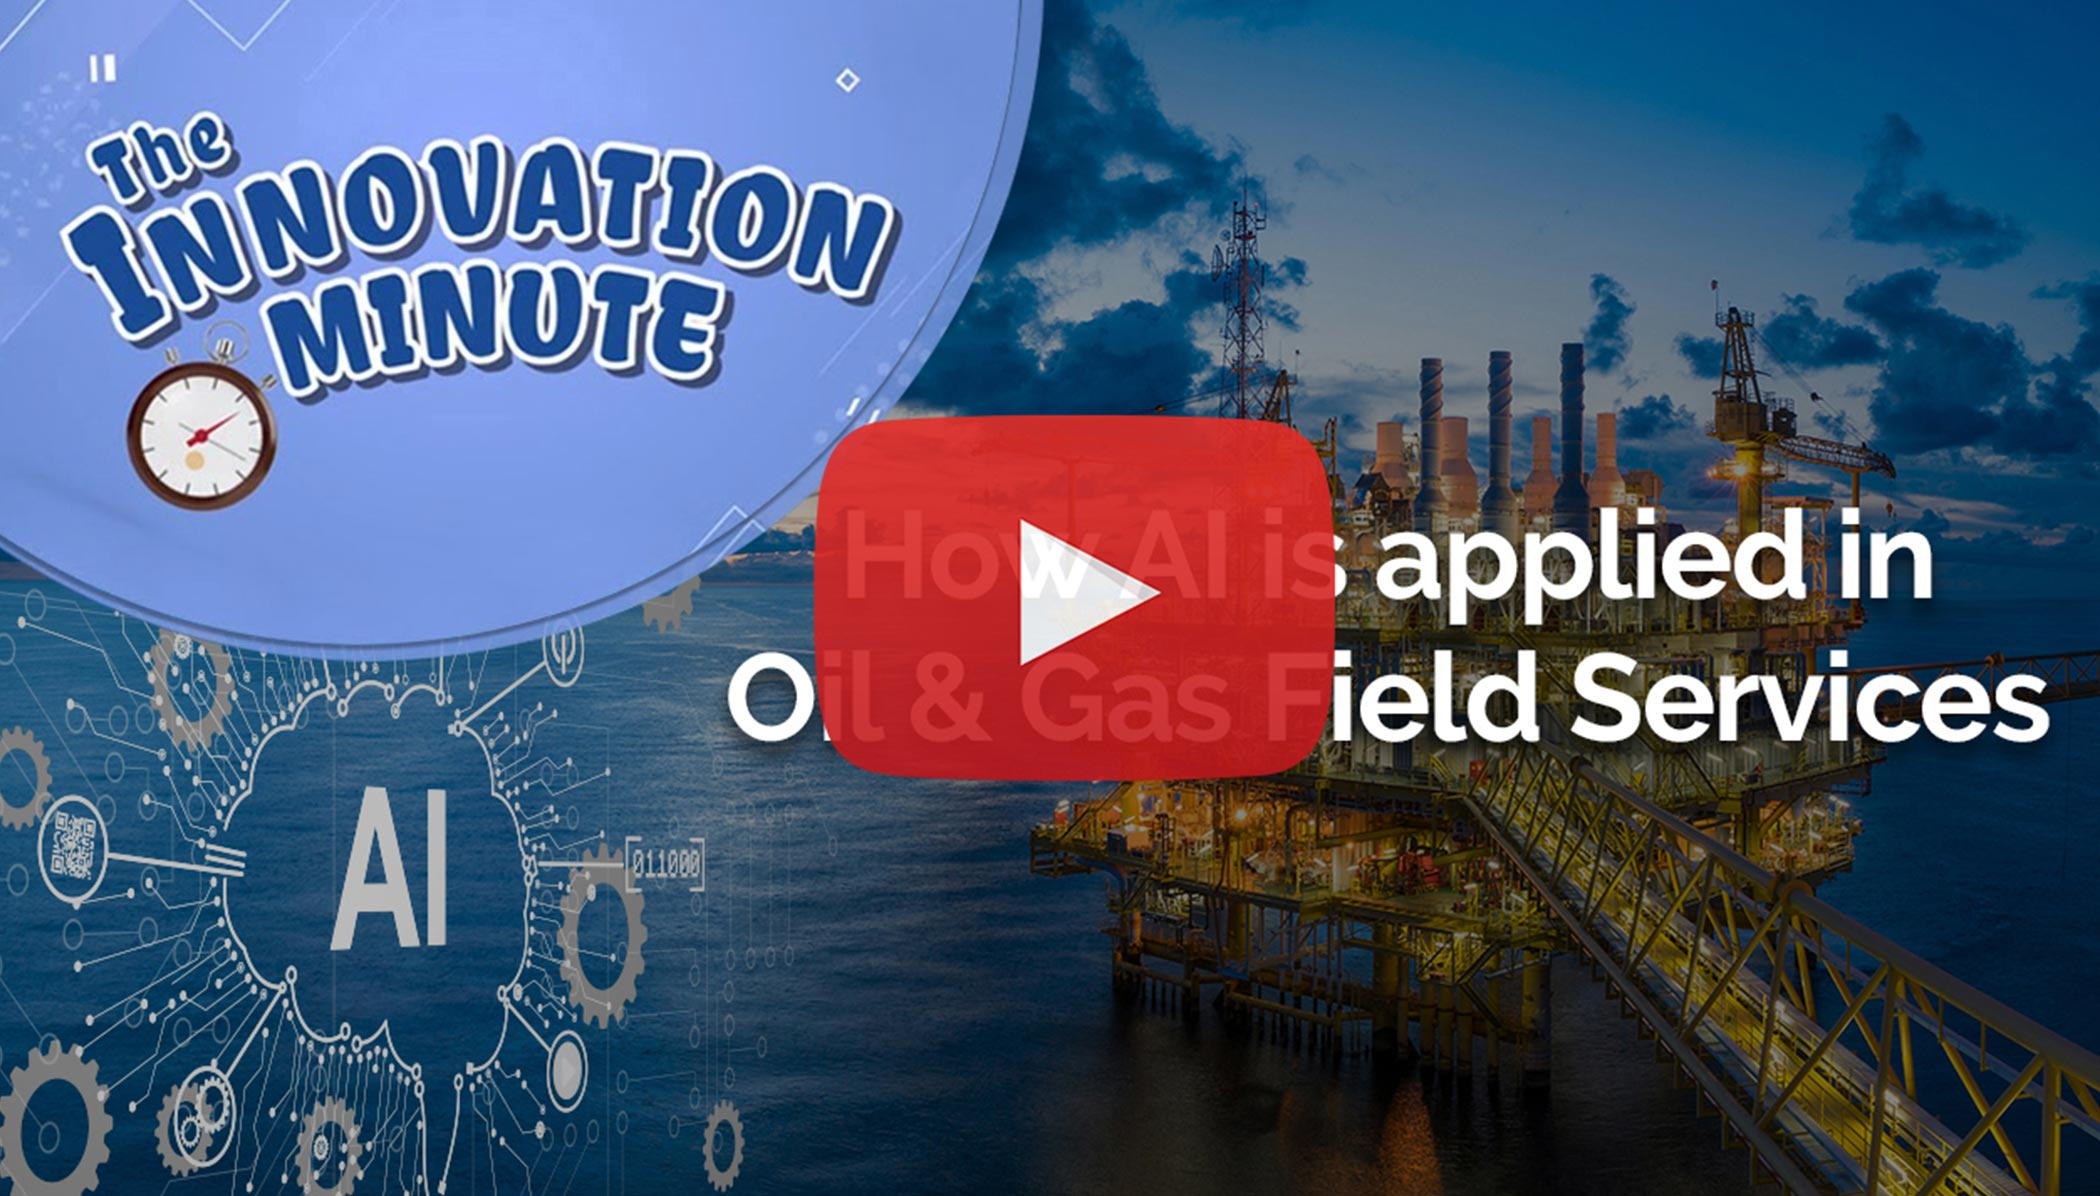 Ways AI Can Improve Oil and Gas Field Service Operations